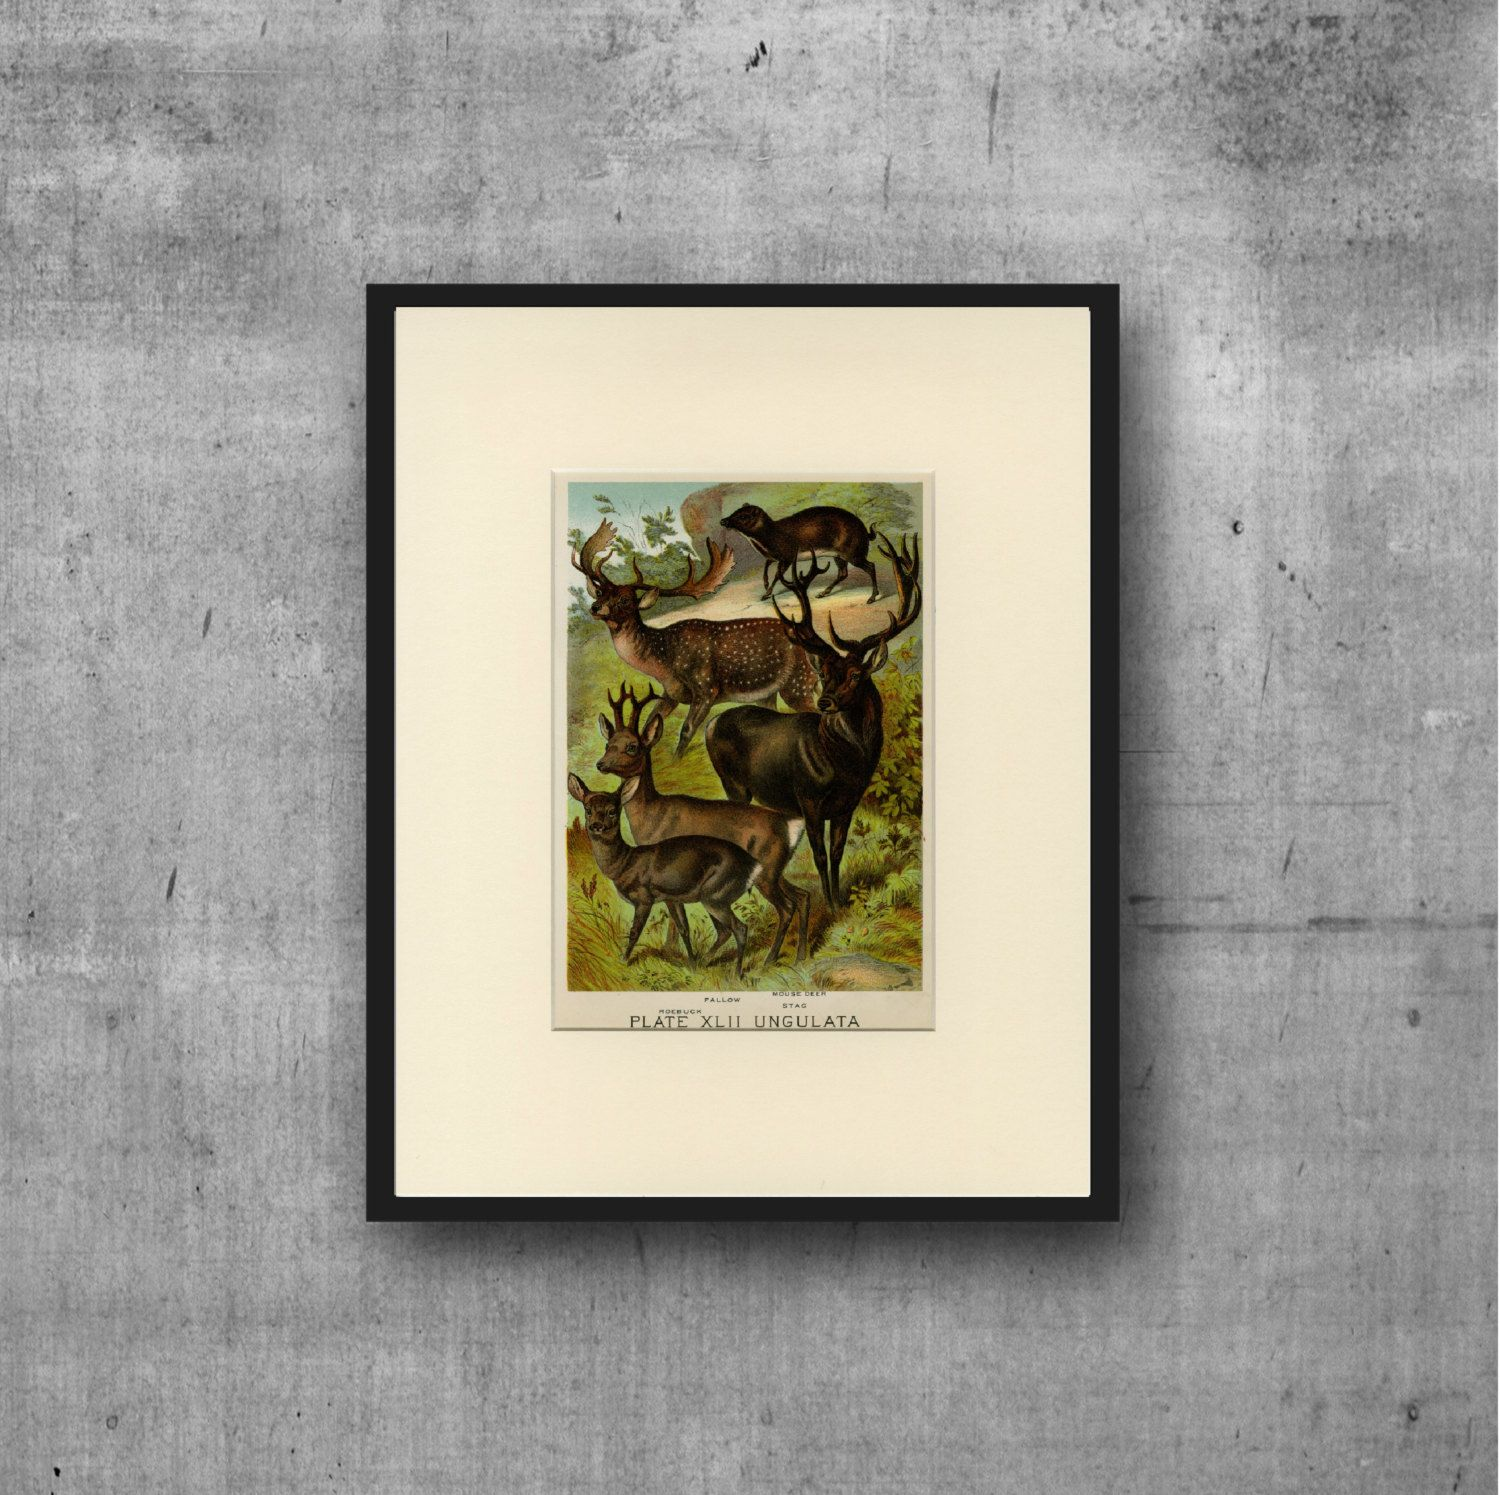 Vintage Deer Art Print C. 1880 - Antique Lithograph - Matted 11x14 - Wall Art, Home Decor, Gift Idea - Natural History, Buck, Stag, Hunt by…